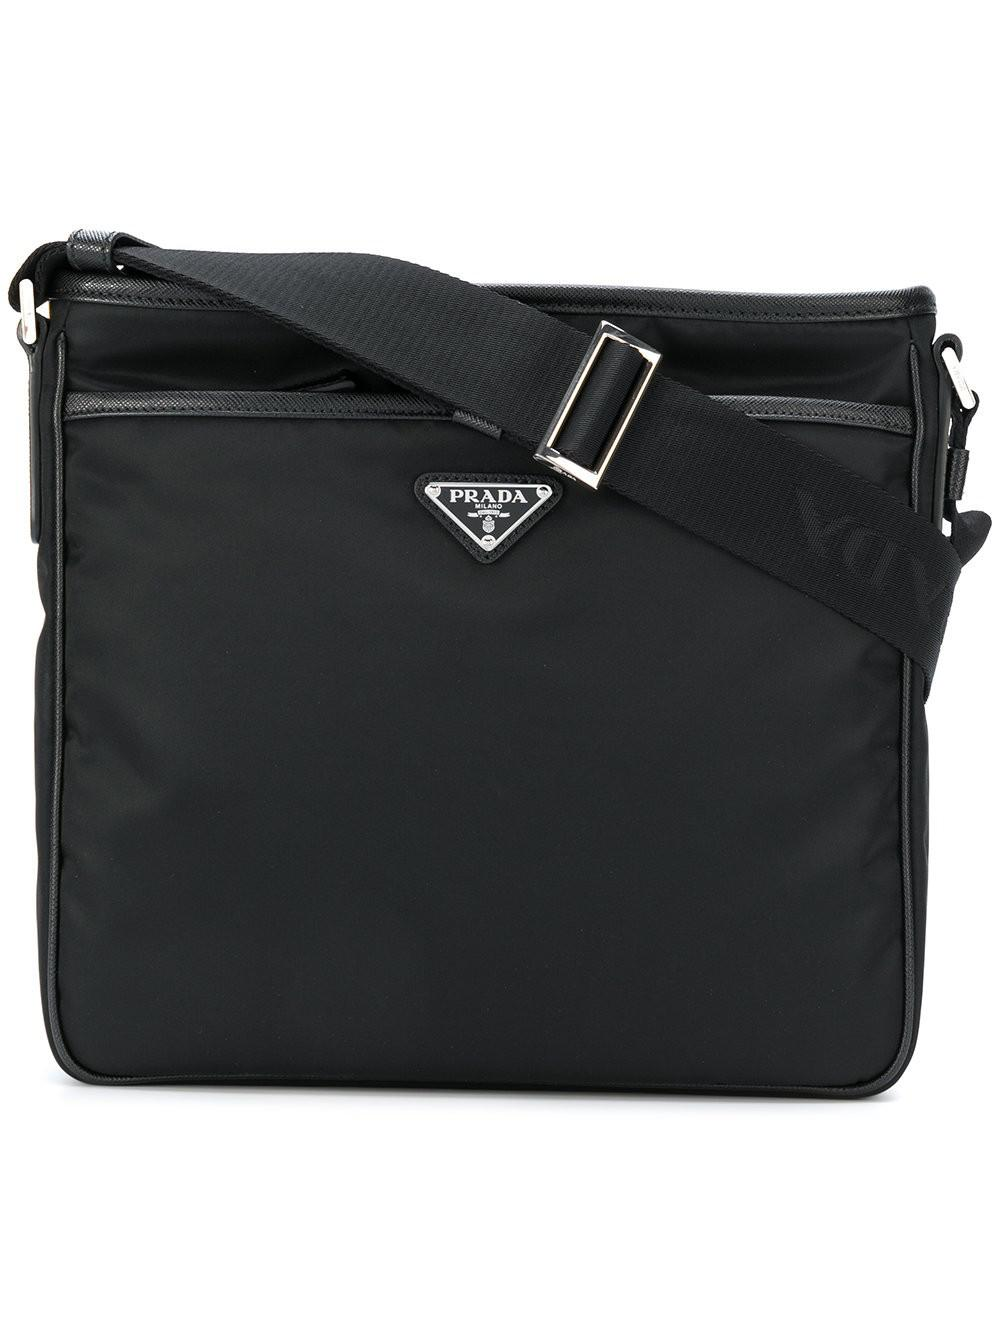 Prada Safety buckle fastening shoulder bag h4kObMIU3